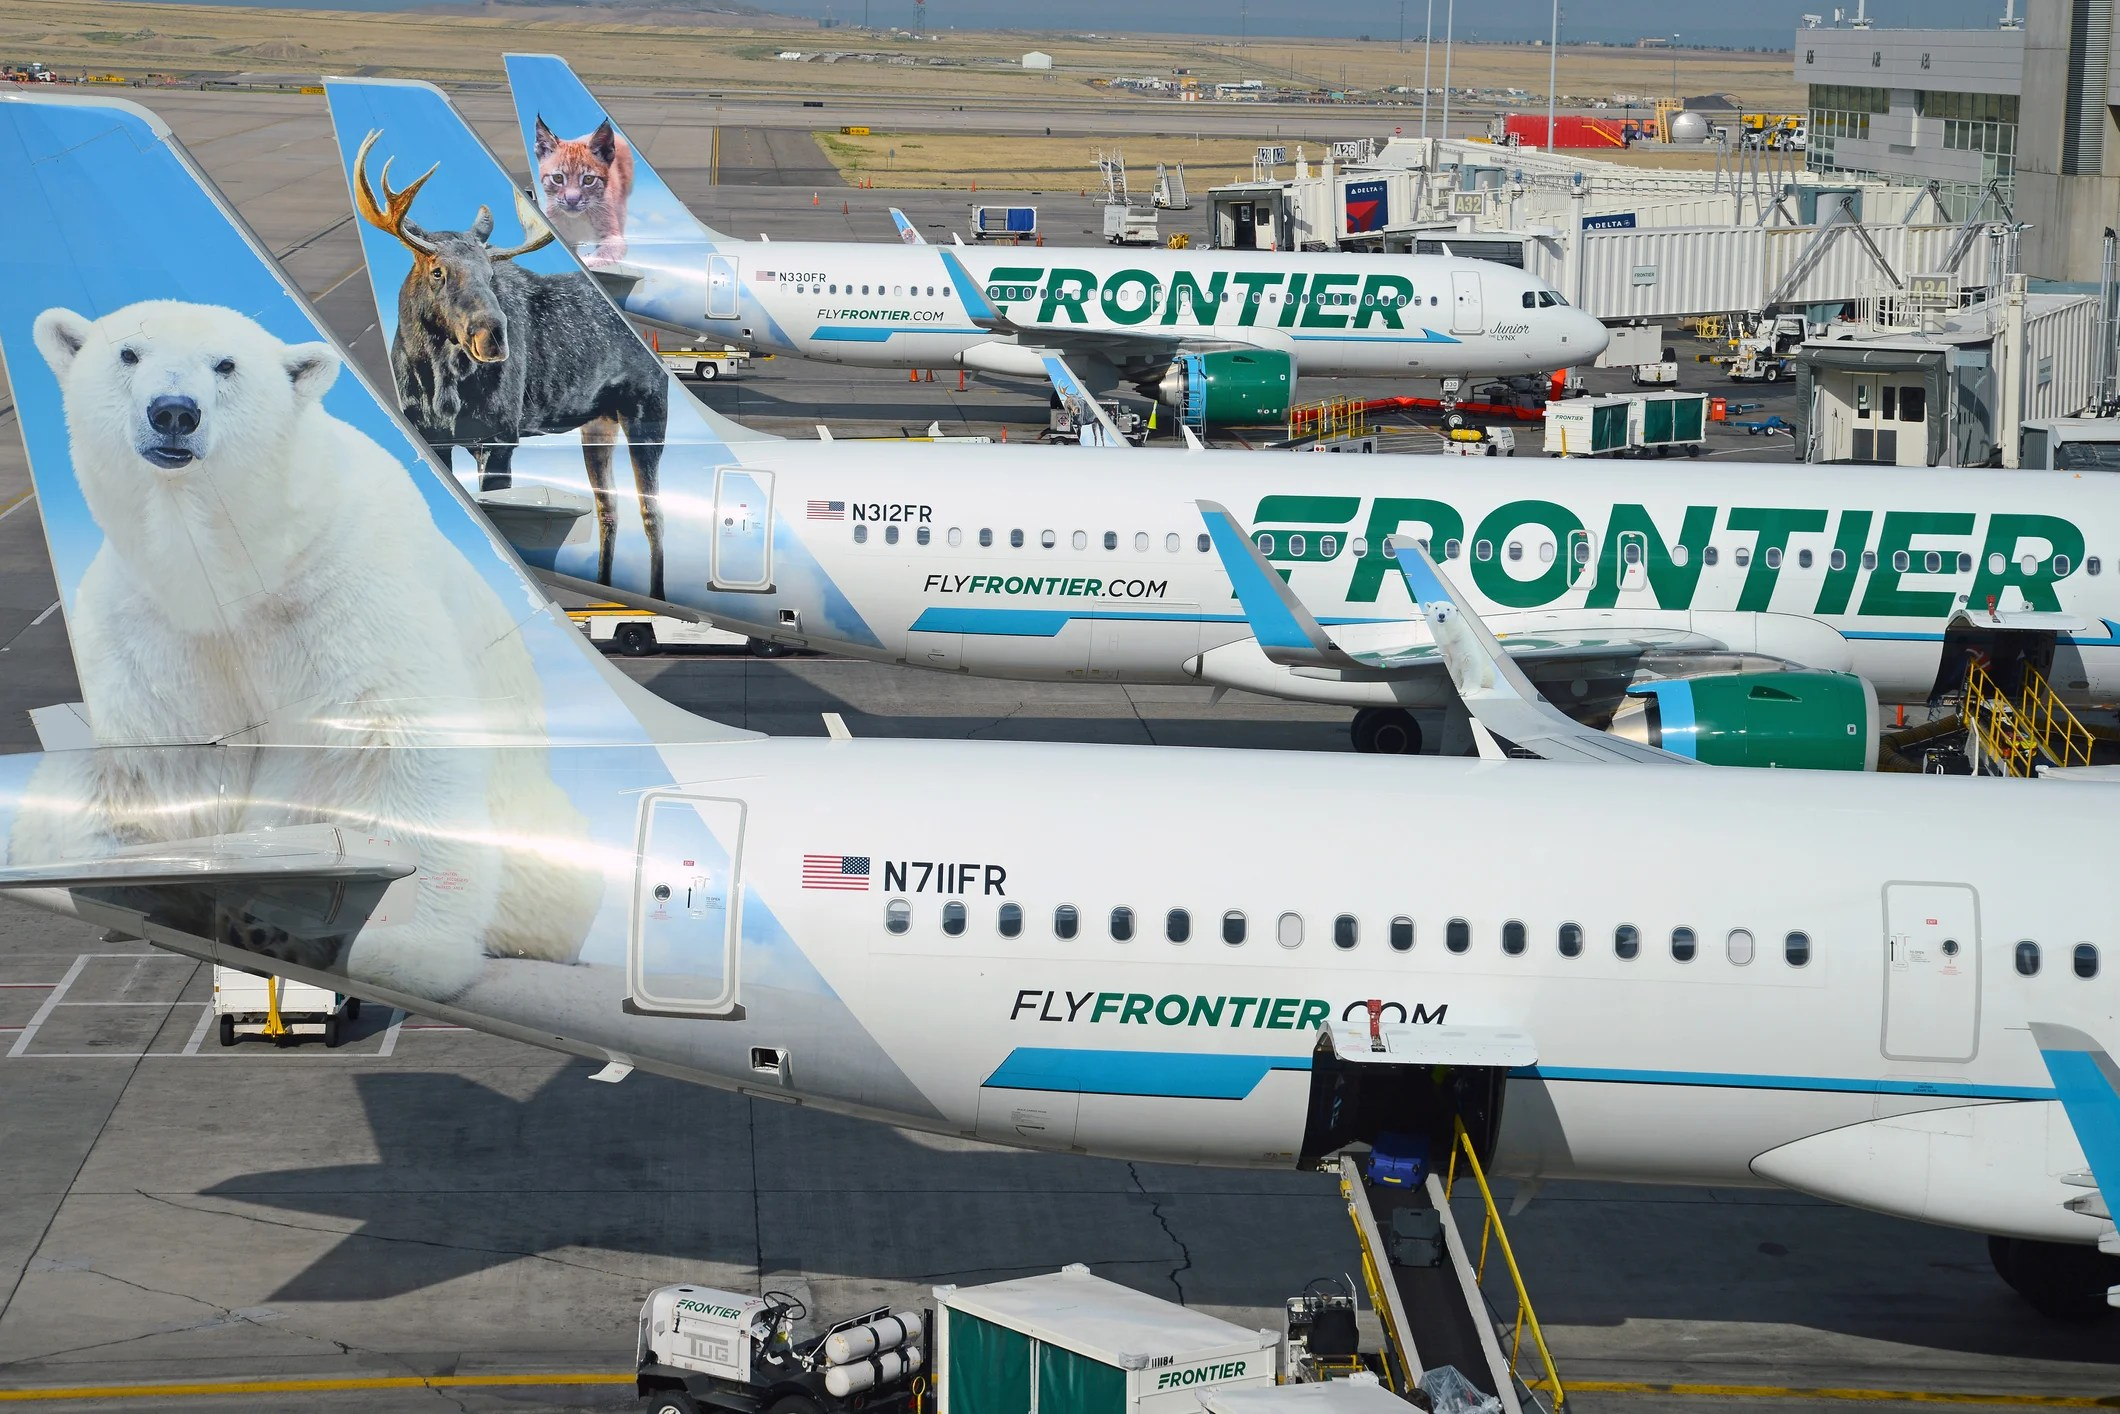 Pack Your Bags: Frontier Airlines Formally Launches 'Friends Fly Free'